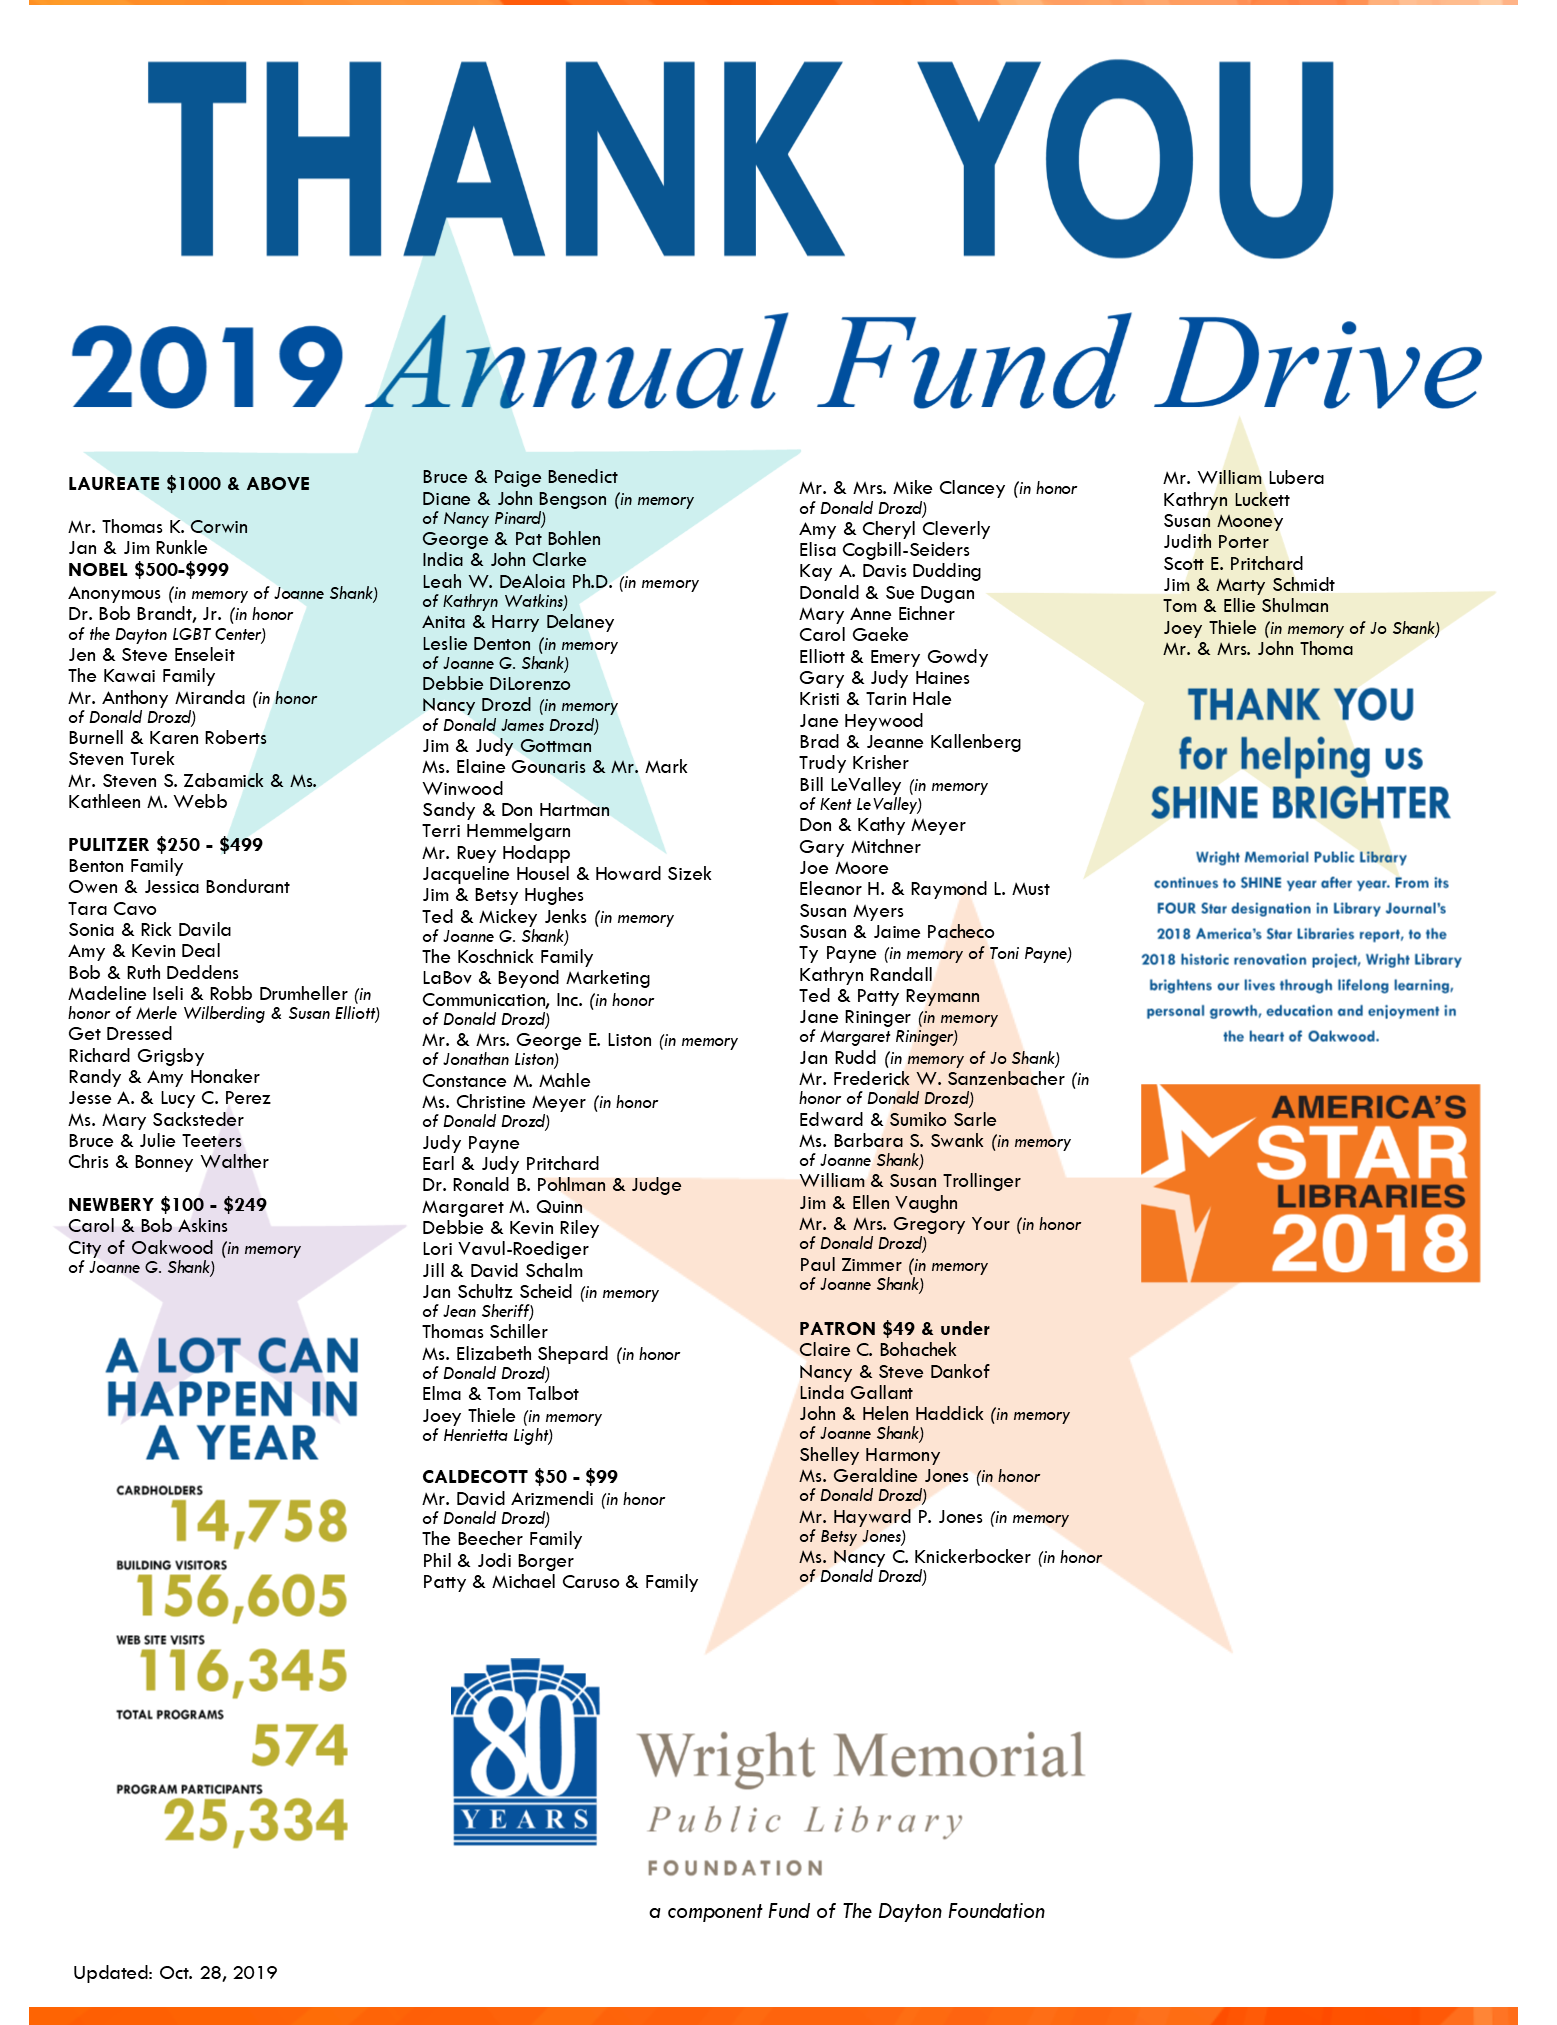 2019 donor list updated Oct, 28, 2019